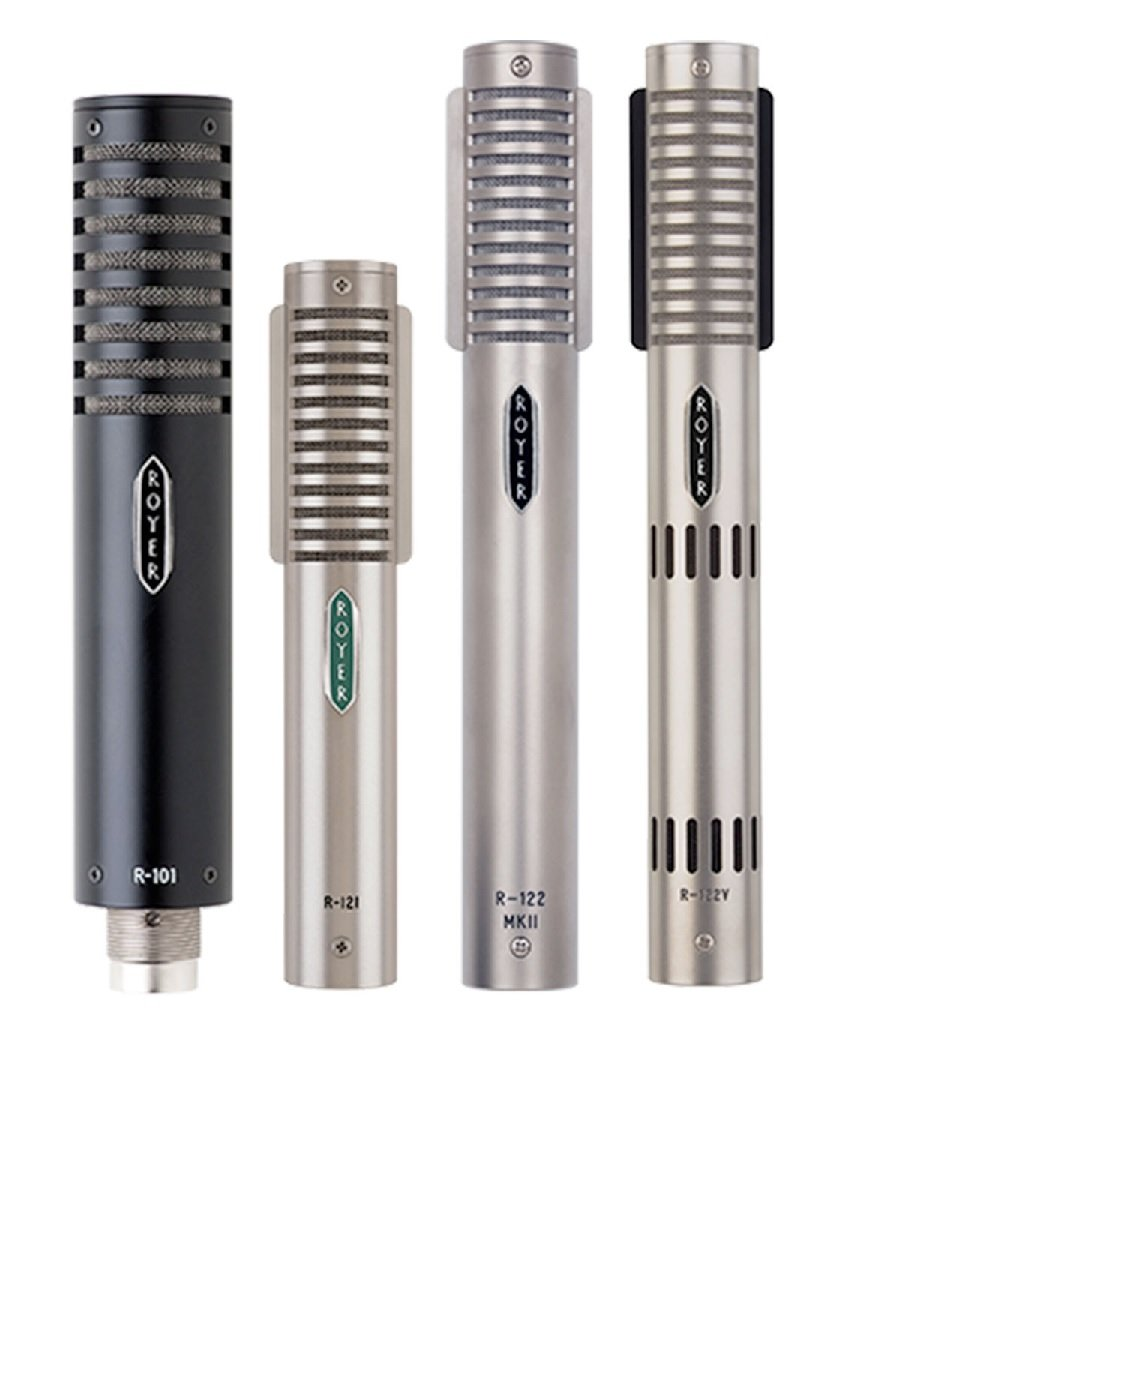 Royer Labs Holiday Ribbon Mic Mail-In rebate